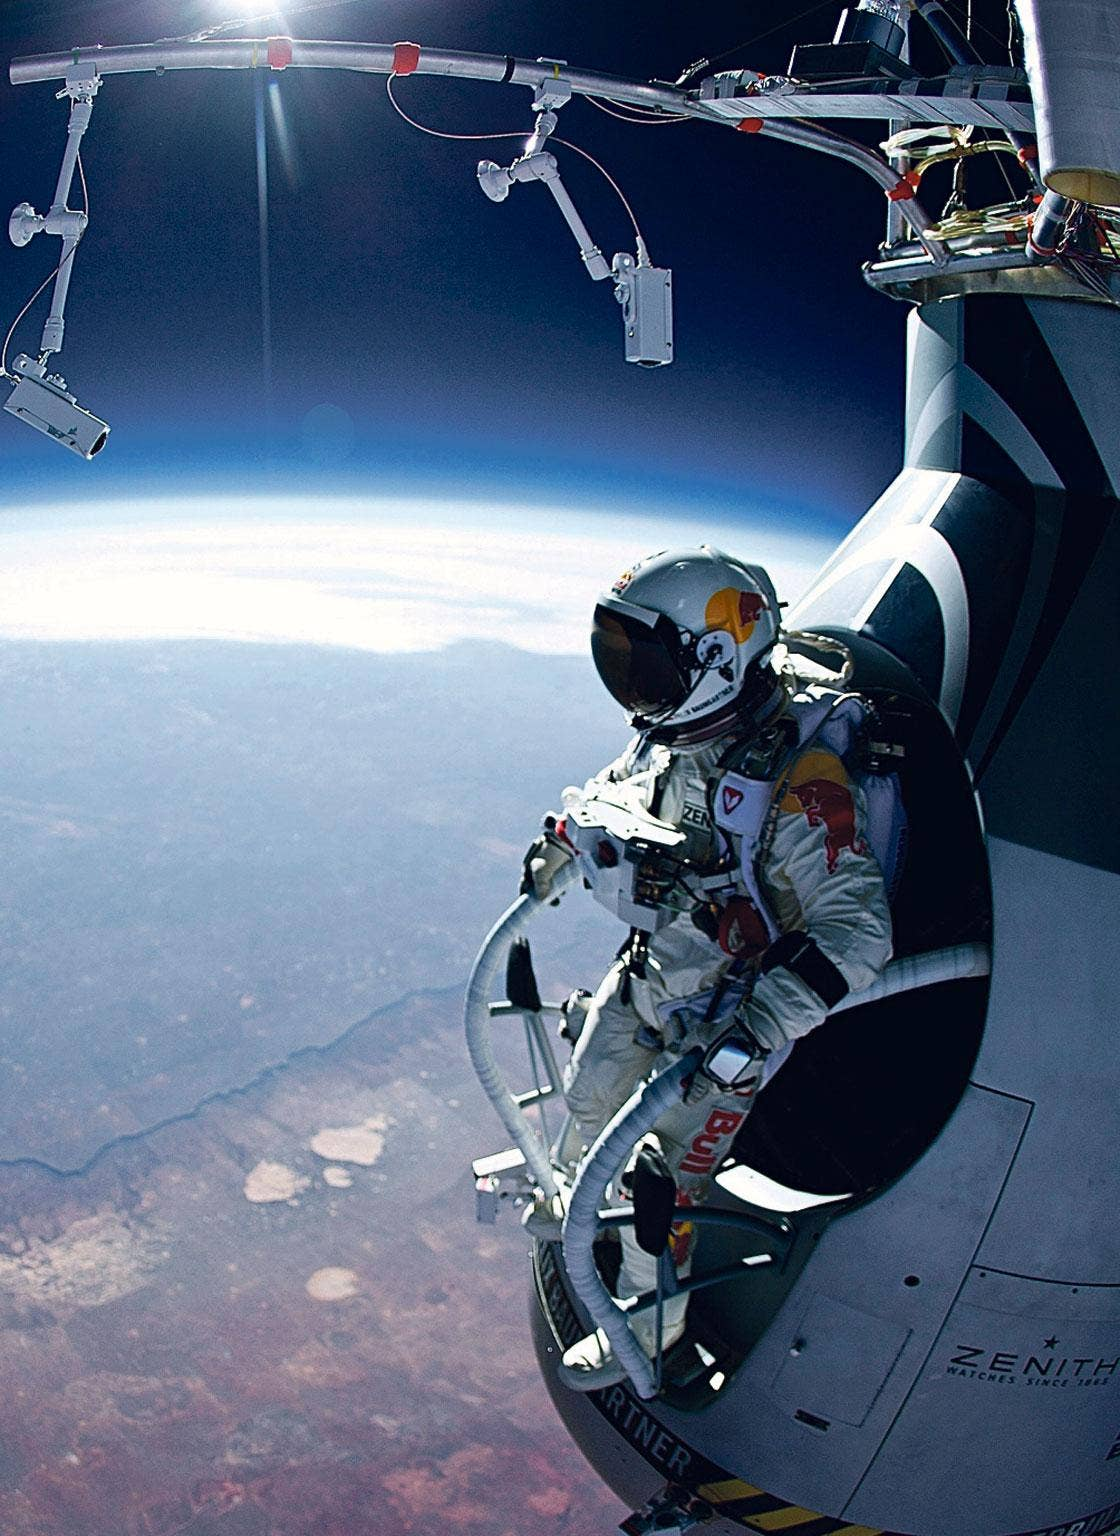 To the nearest mile, how high was Austrian skydiver Felix Baumgartner when he jumped out of his Red Bull Stratos  helium-filled balloon on 14 October?